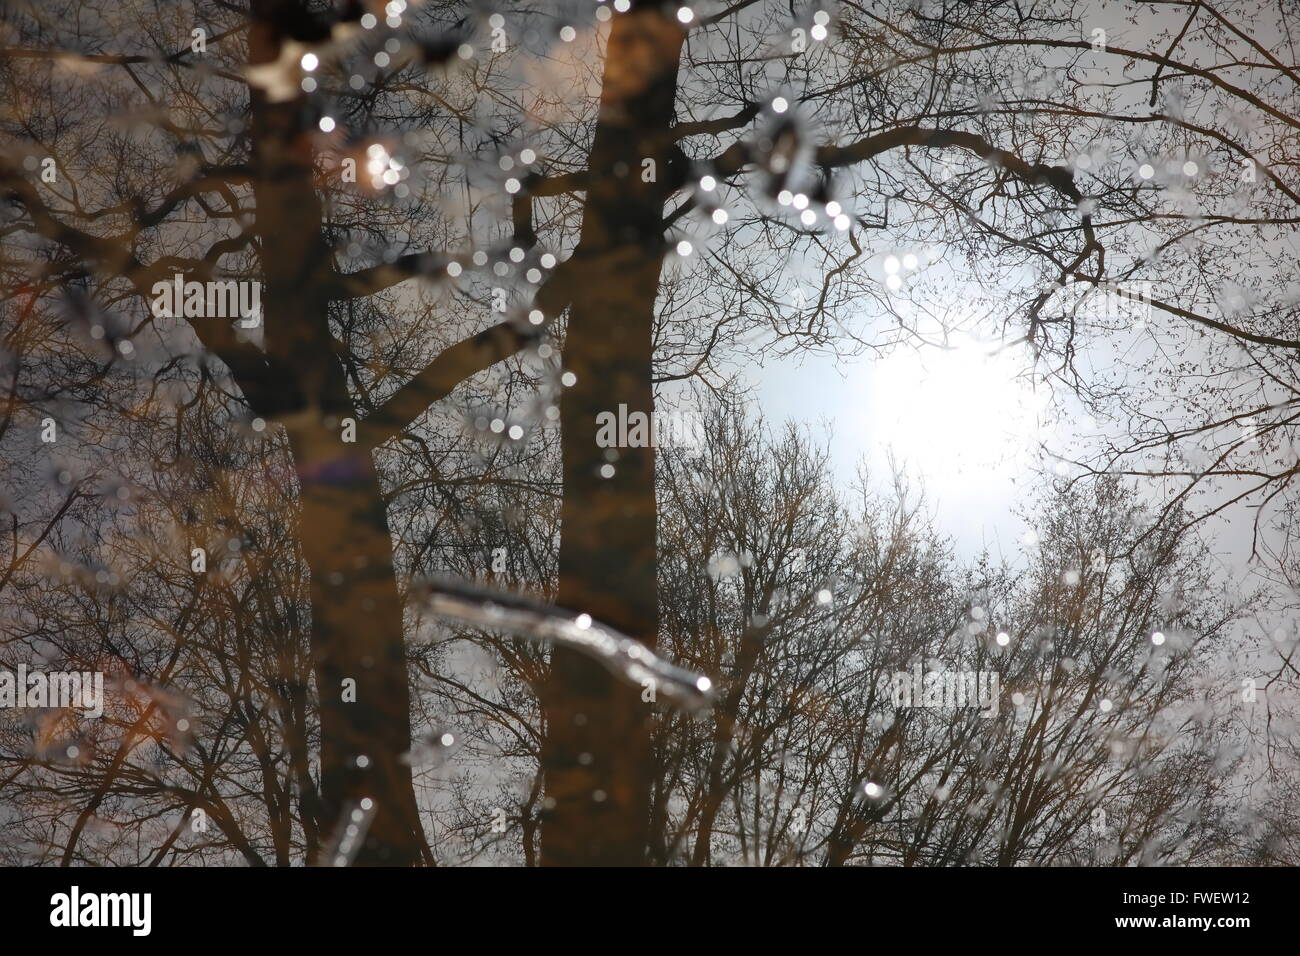 reflection-of-trees-in-a-large-puddle-wi